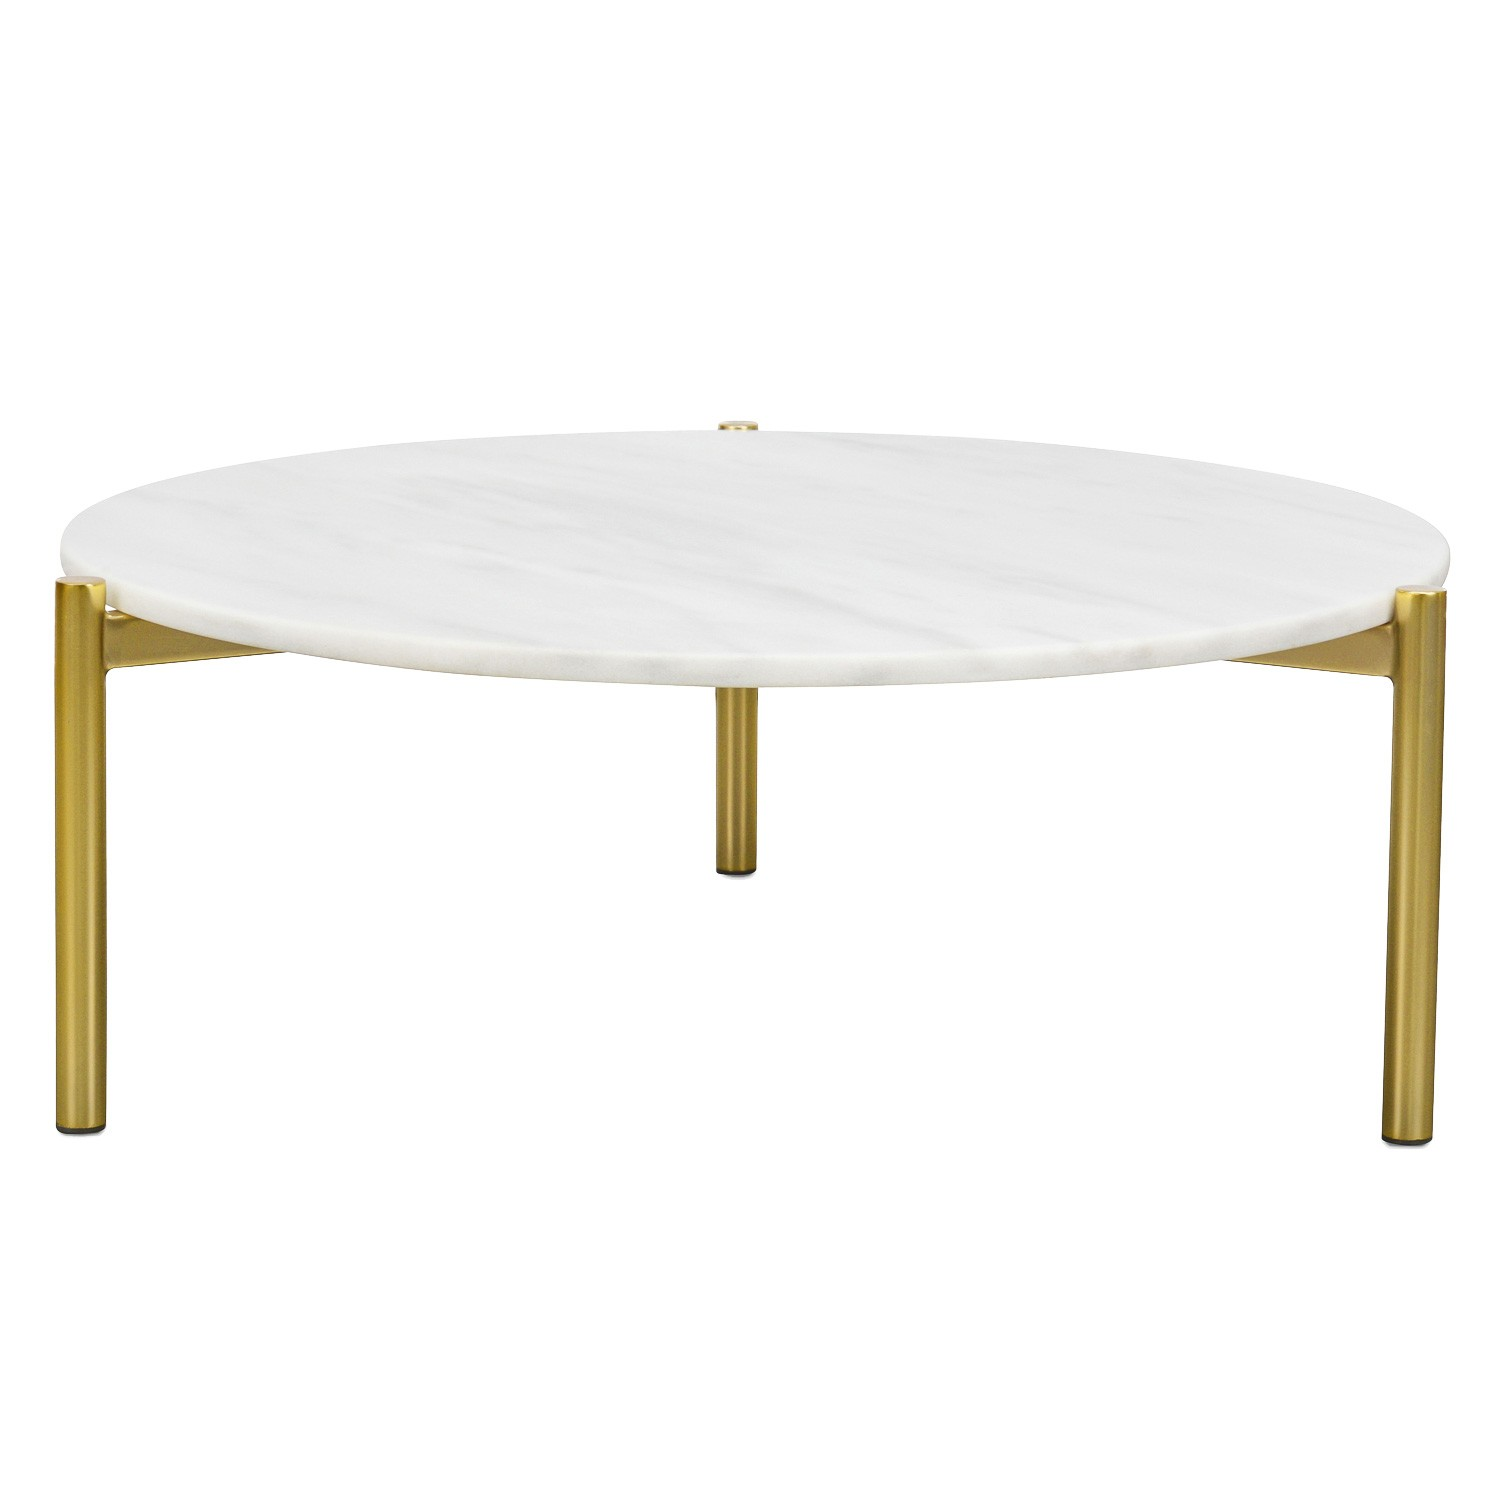 Fiesco Round Marble Top Coffee Table, 79cm, White / Gold